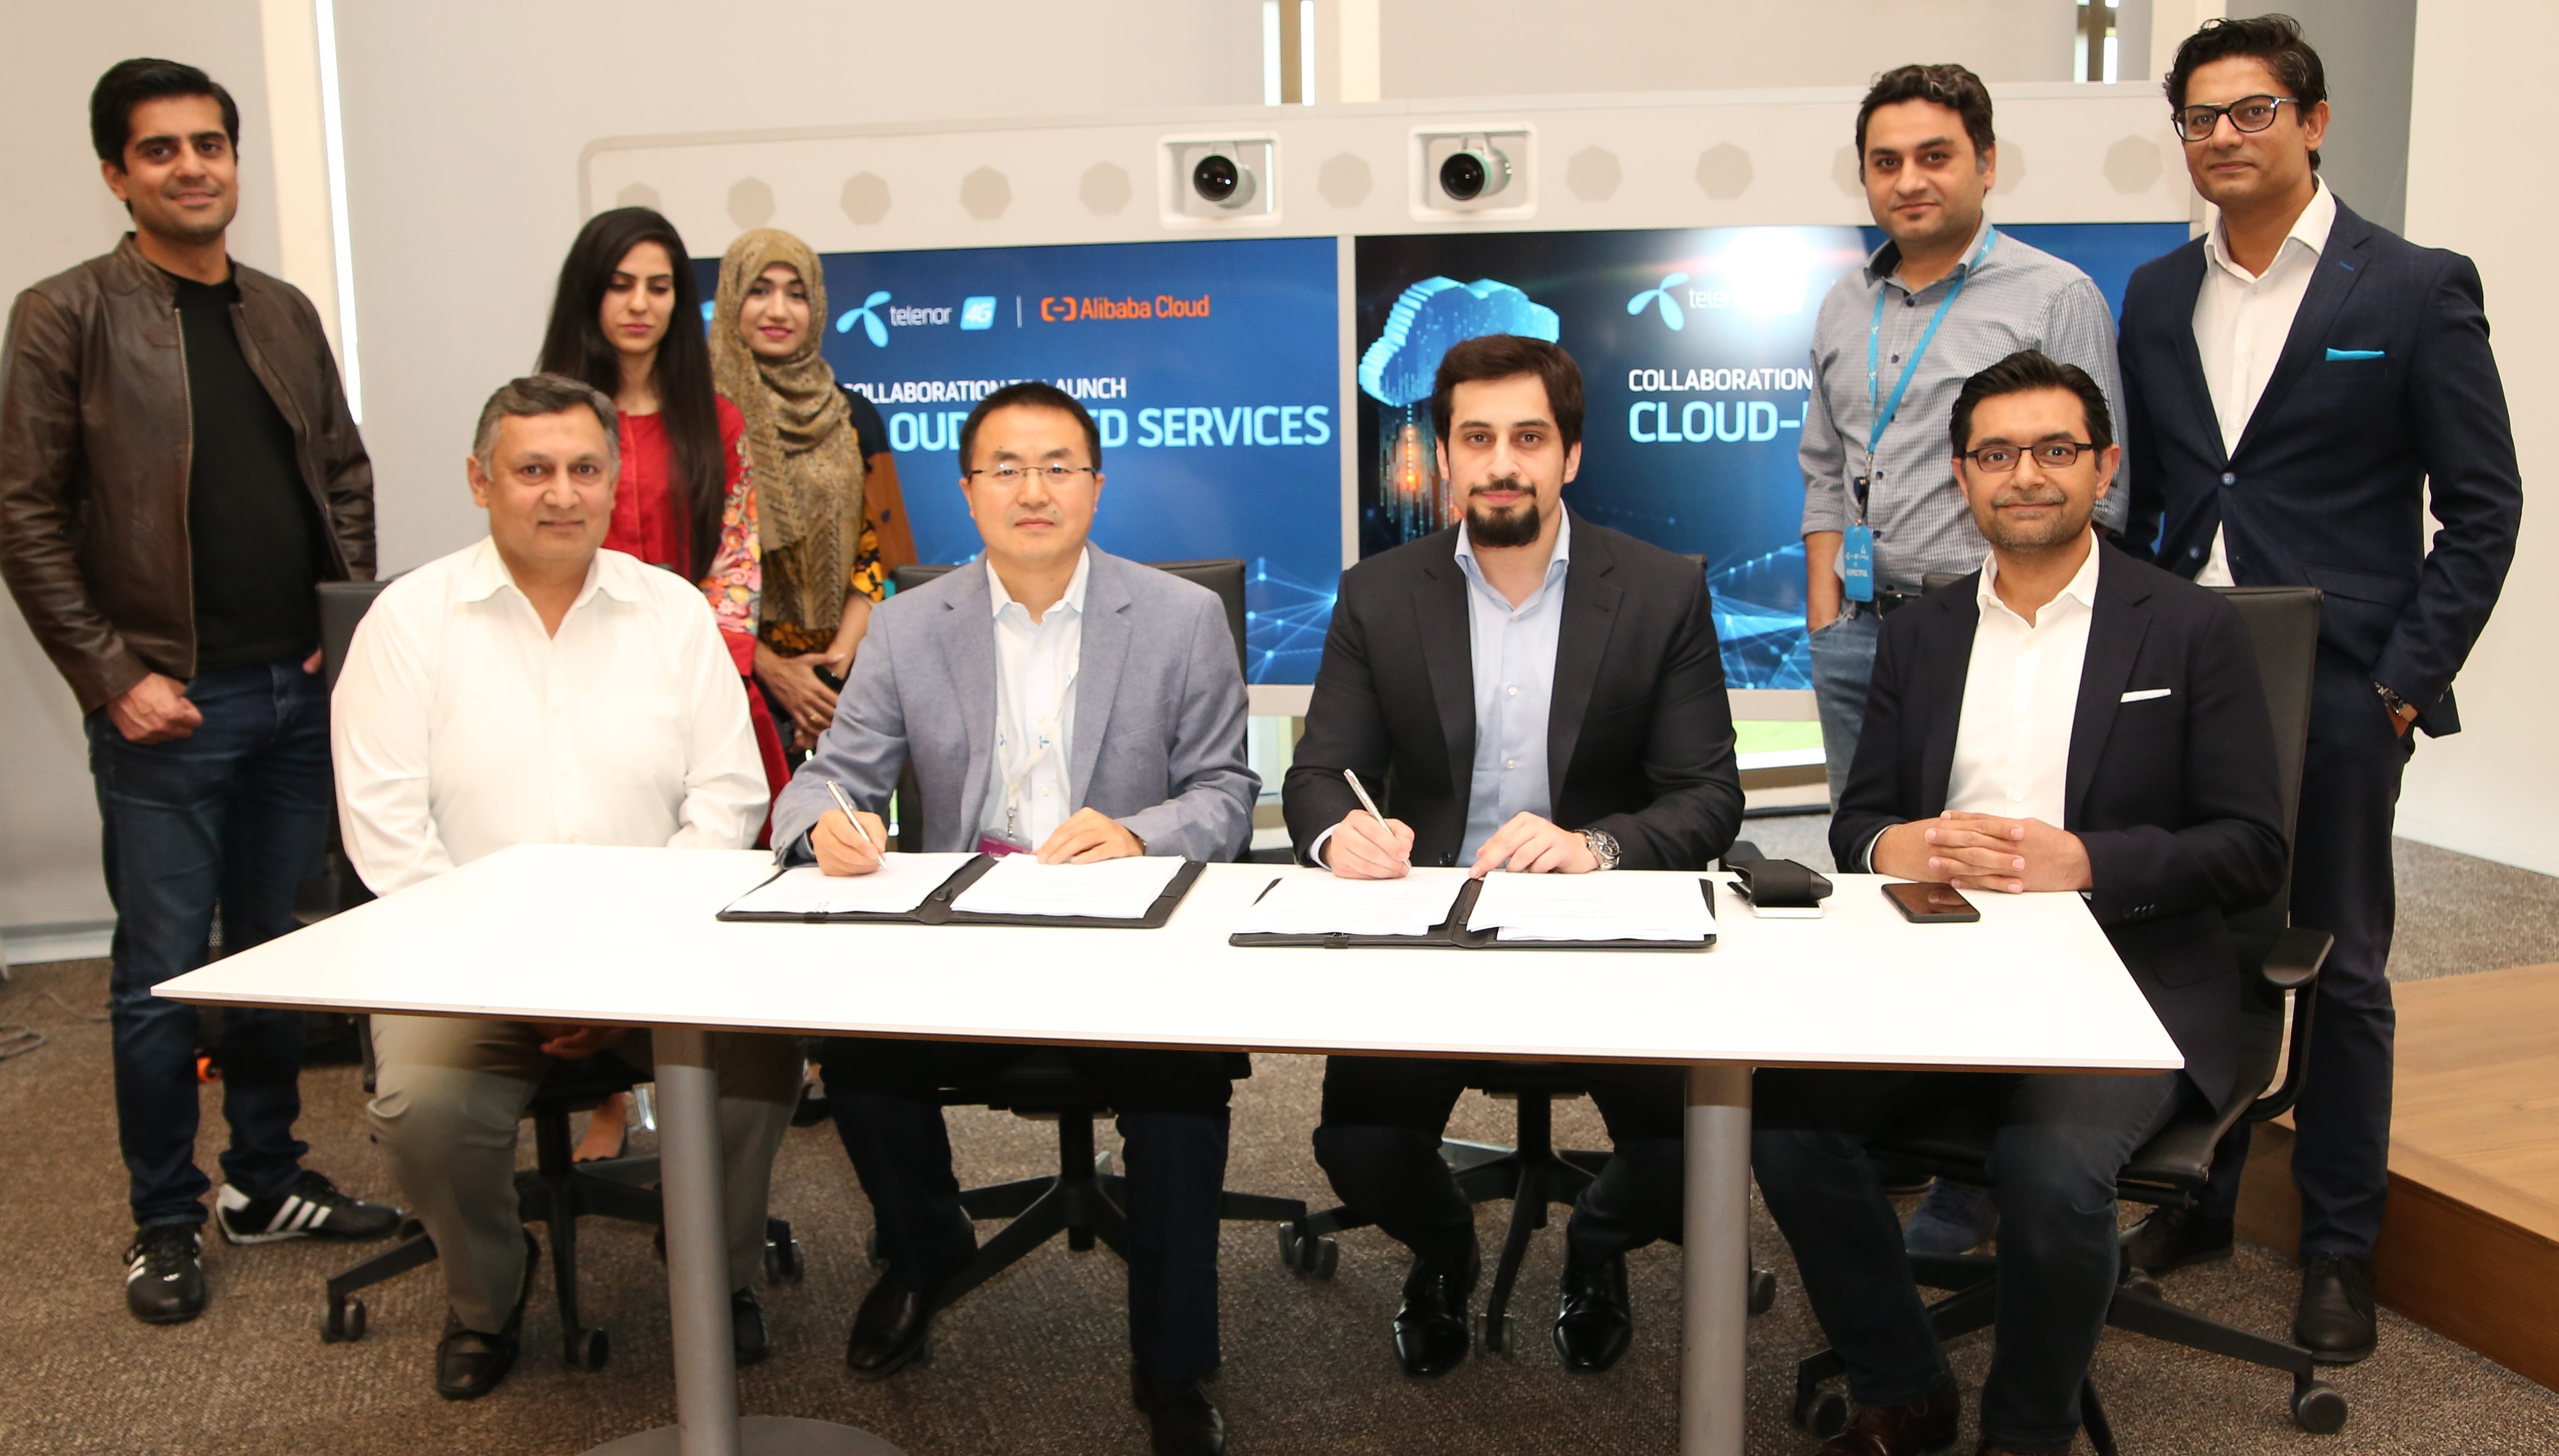 Telenor Pakistan and Alibaba Cloud come together to provide cloud-based services and fasten digital transformation